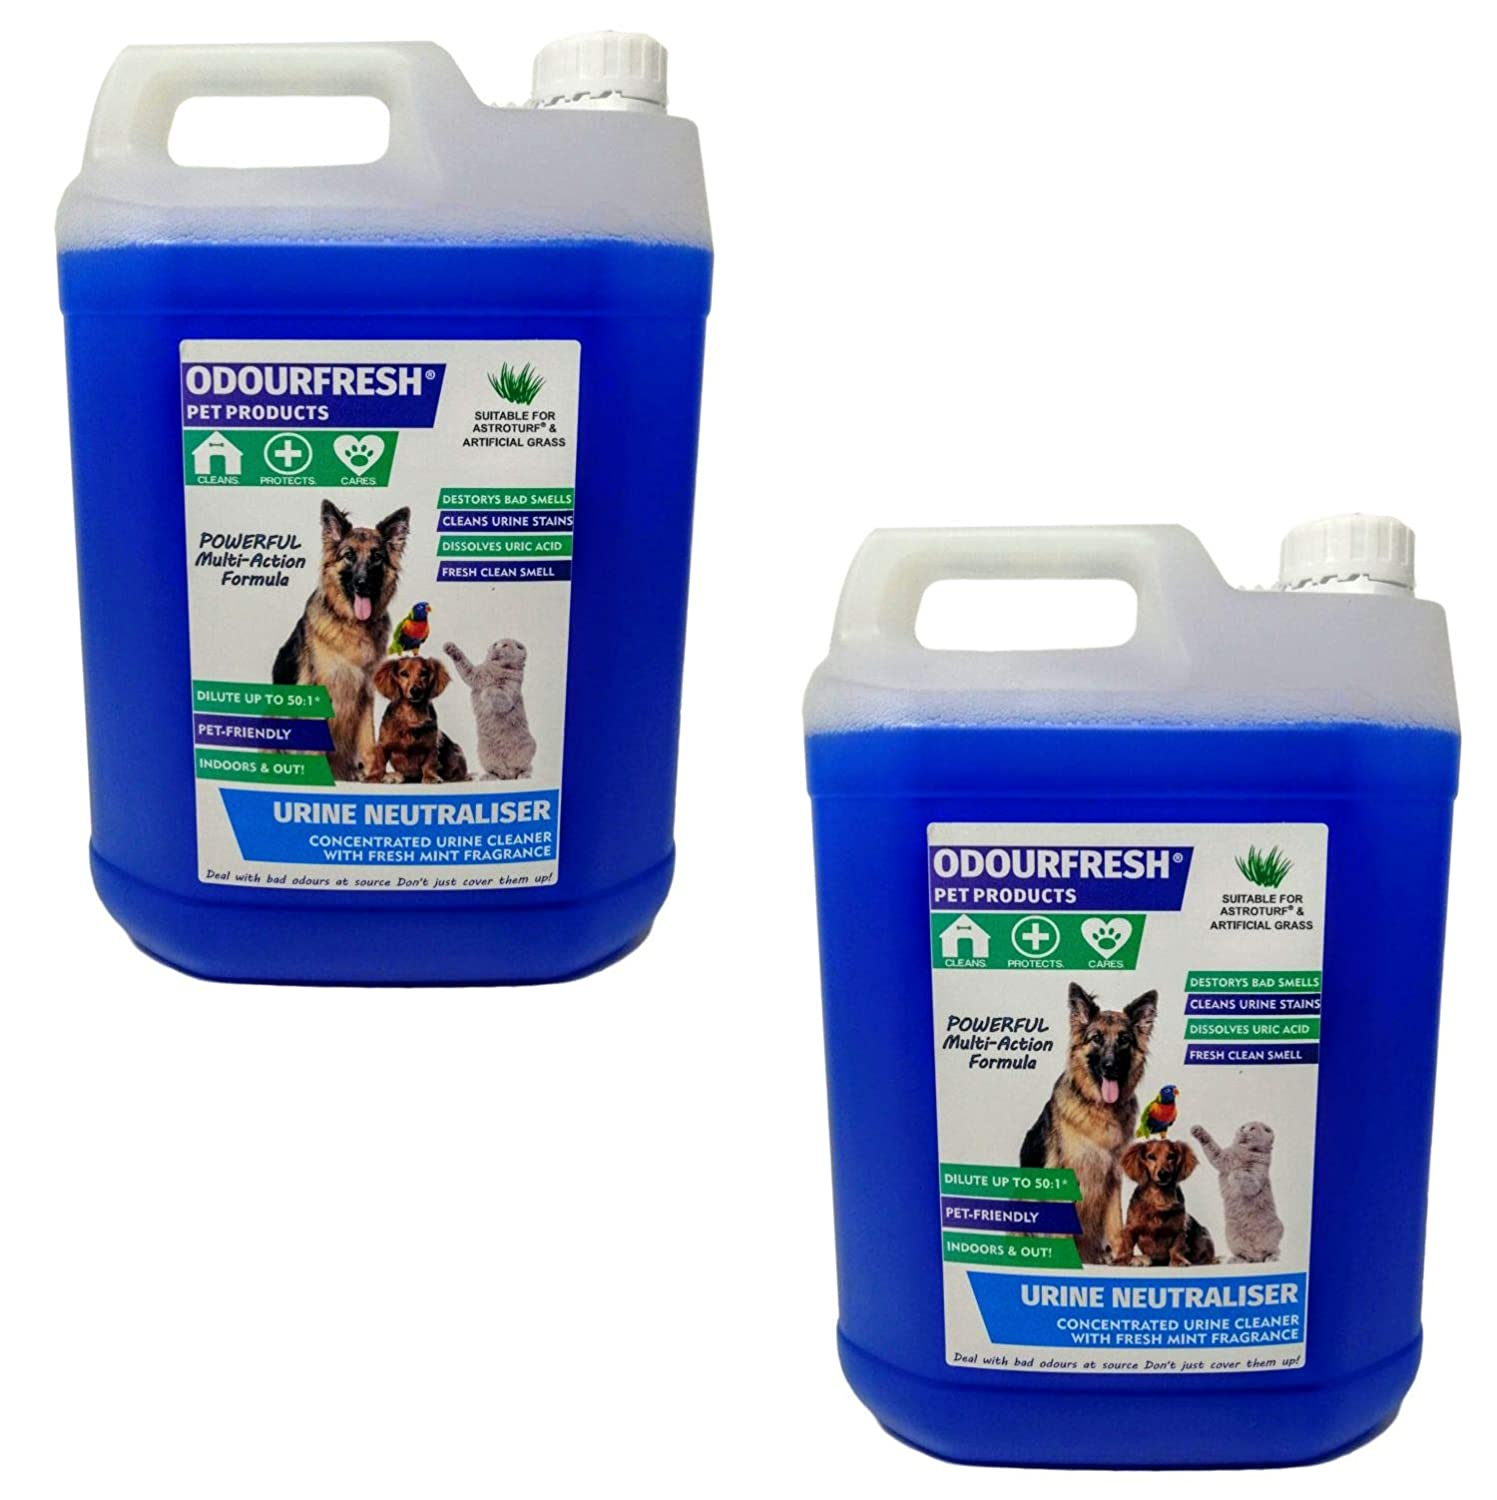 2x5L Odourfresh Urine Neutraliser Concentrate  Cleans Urine and Faeces  Destroys Bad Smells Caused by Cats and Dogs  For Carpets, Patios, Floors and Furniture (Spearmint, 4x5L)